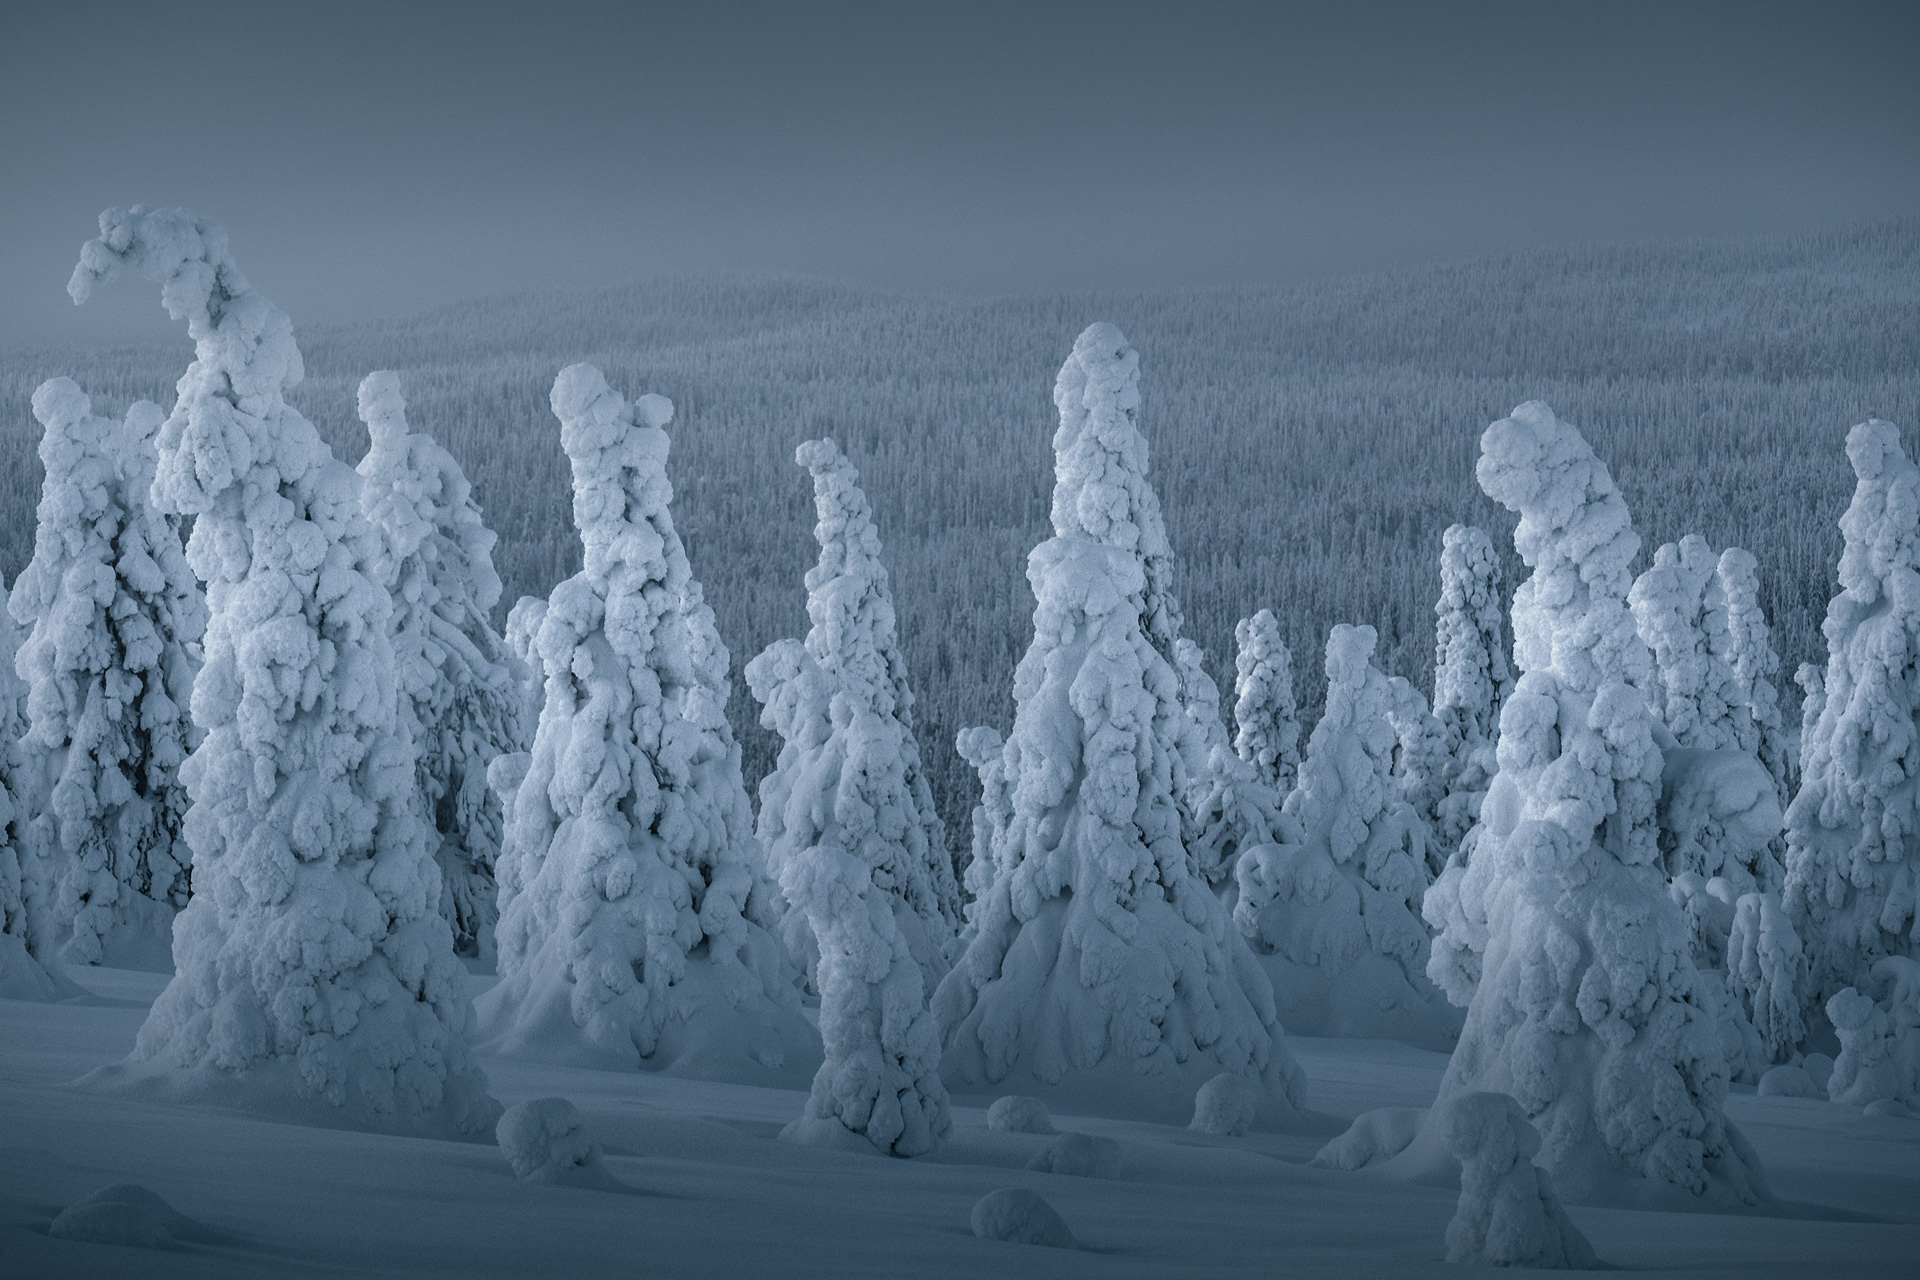 Winter forest scene with trees covered in snow